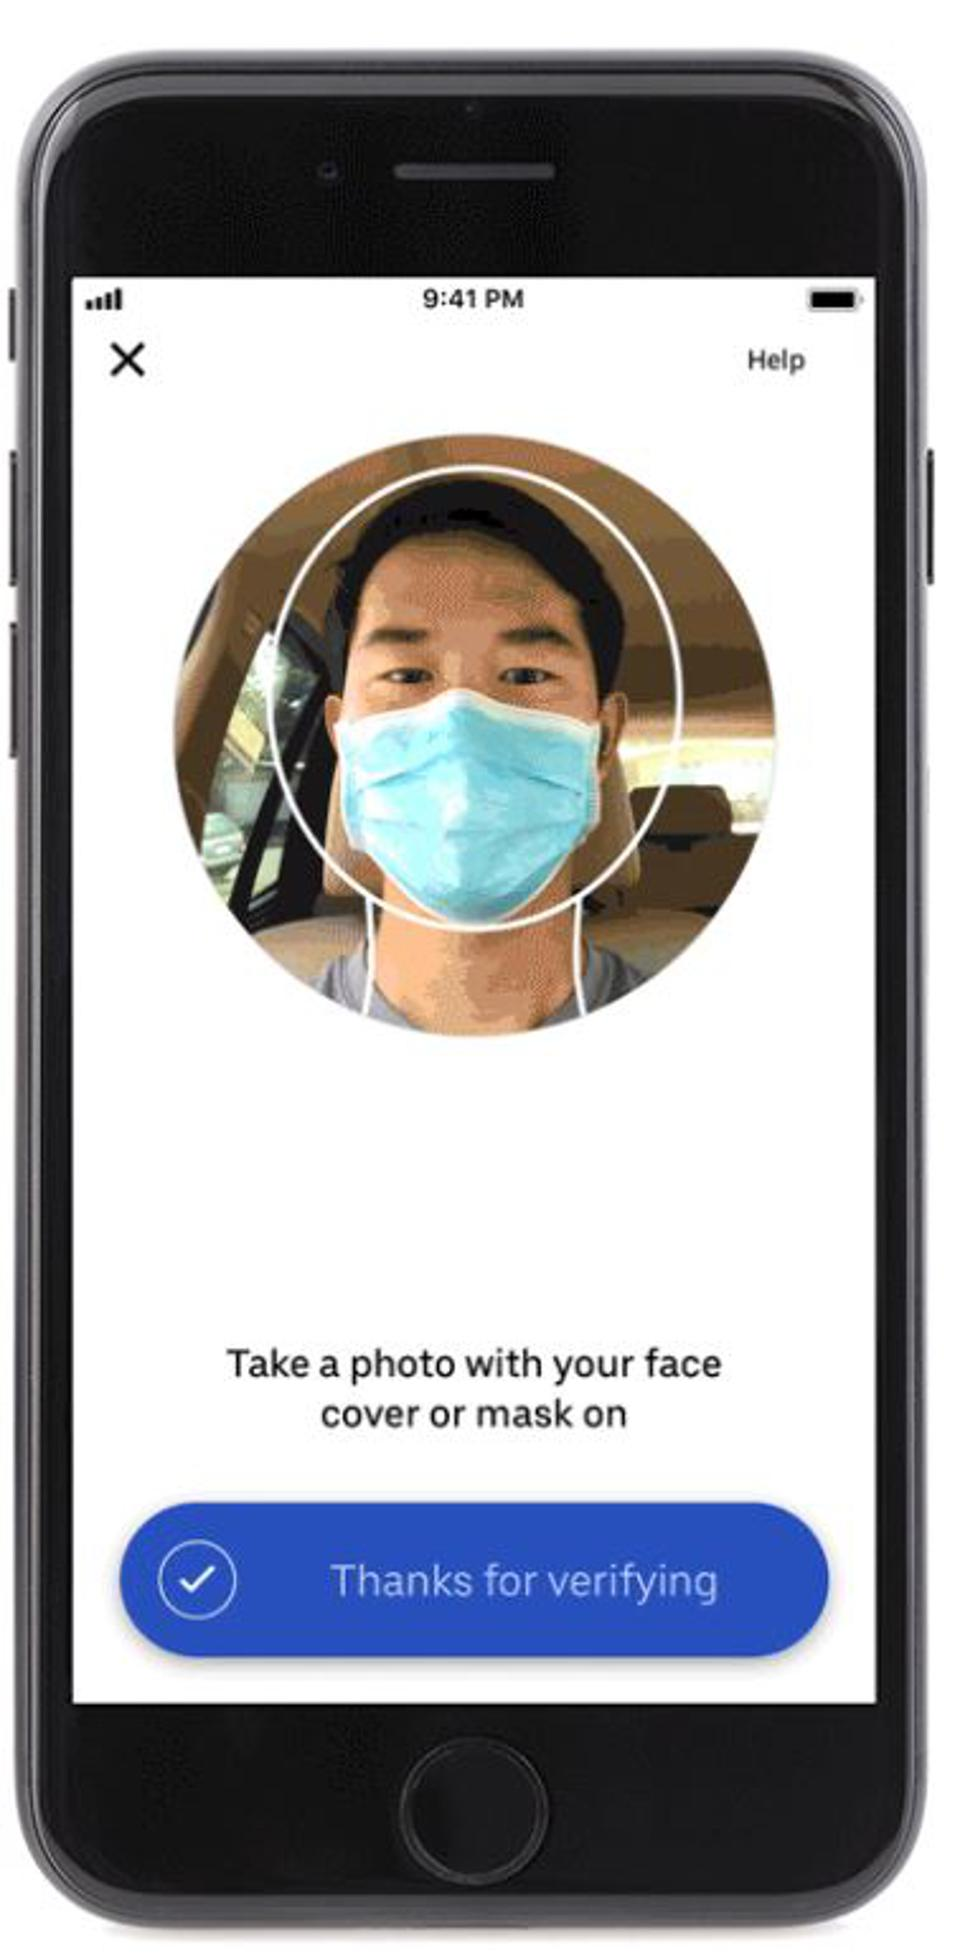 Drivers will also be asked to prove they're wearing masks by taking a selfie.